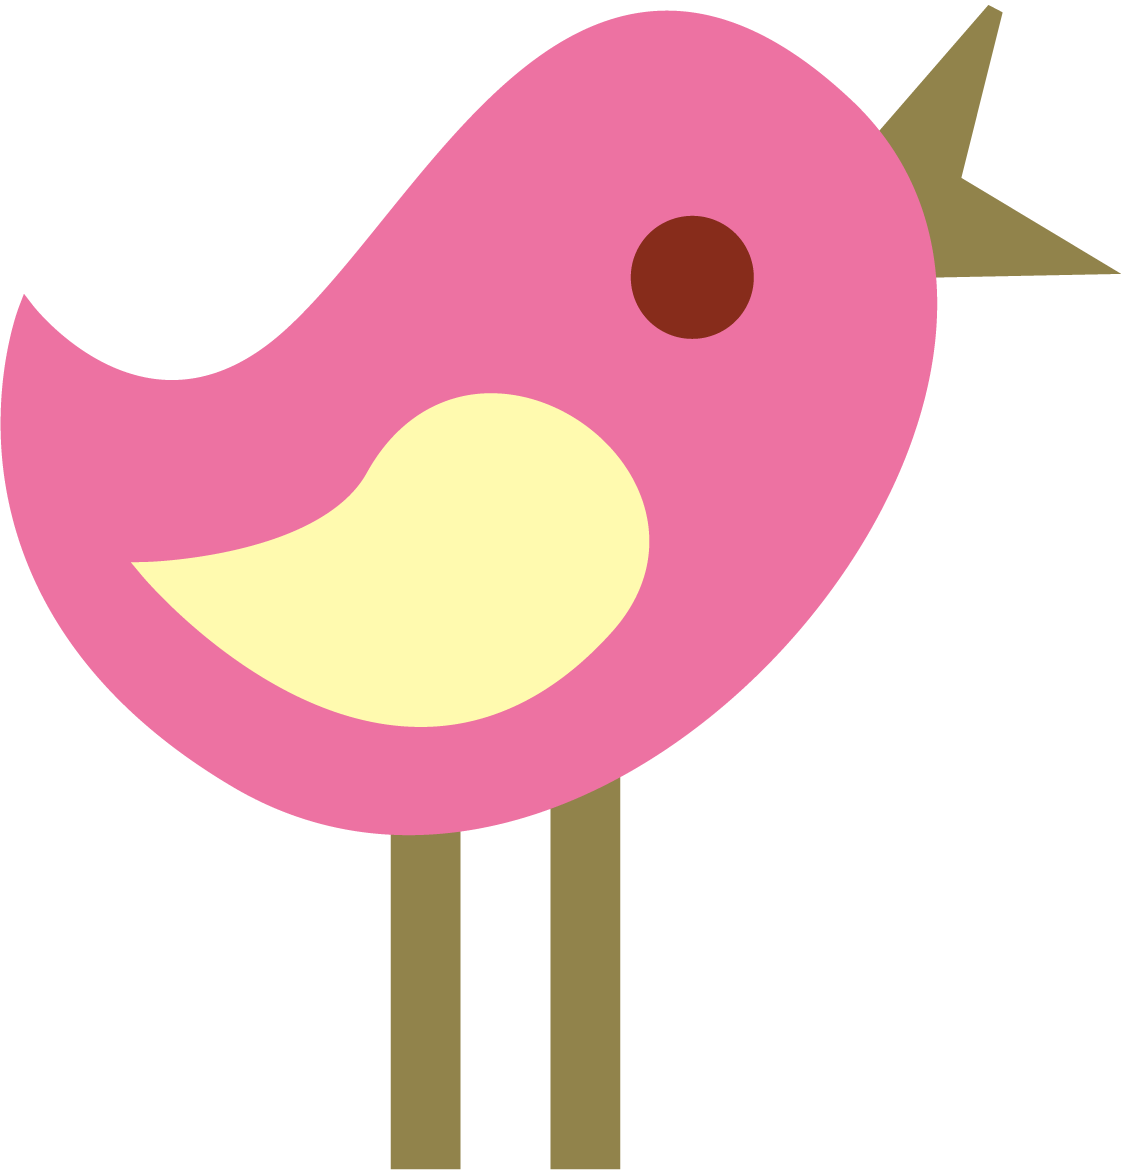 Cute Girly Bird Clipart